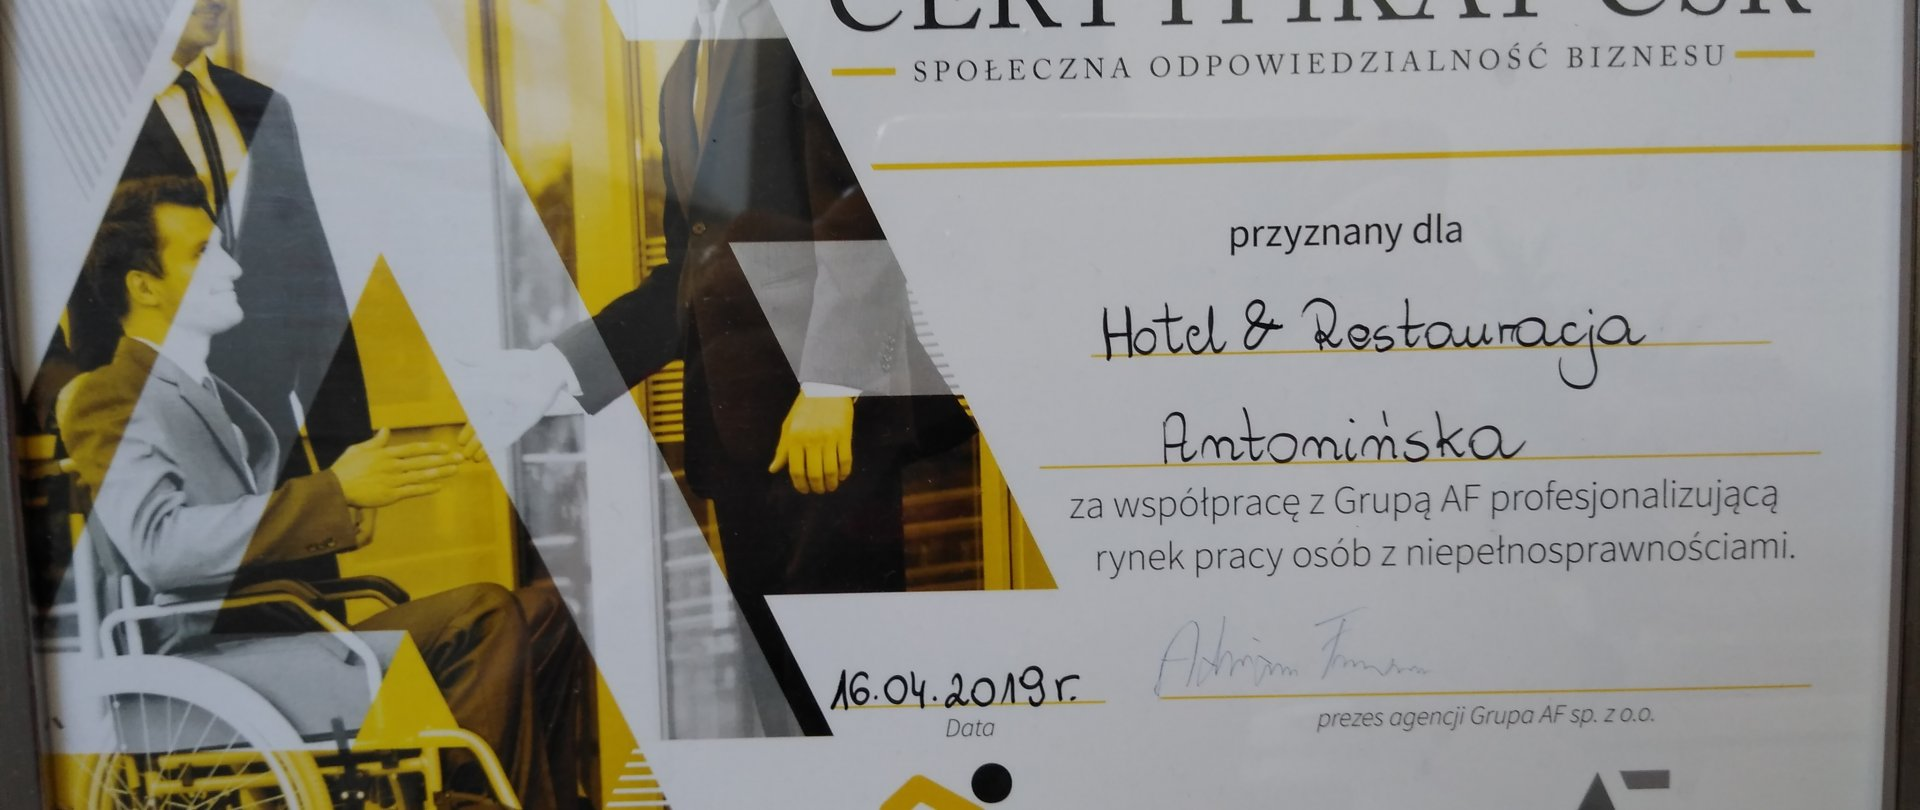 Adjusted - Hotel & Restauracja Antonińska